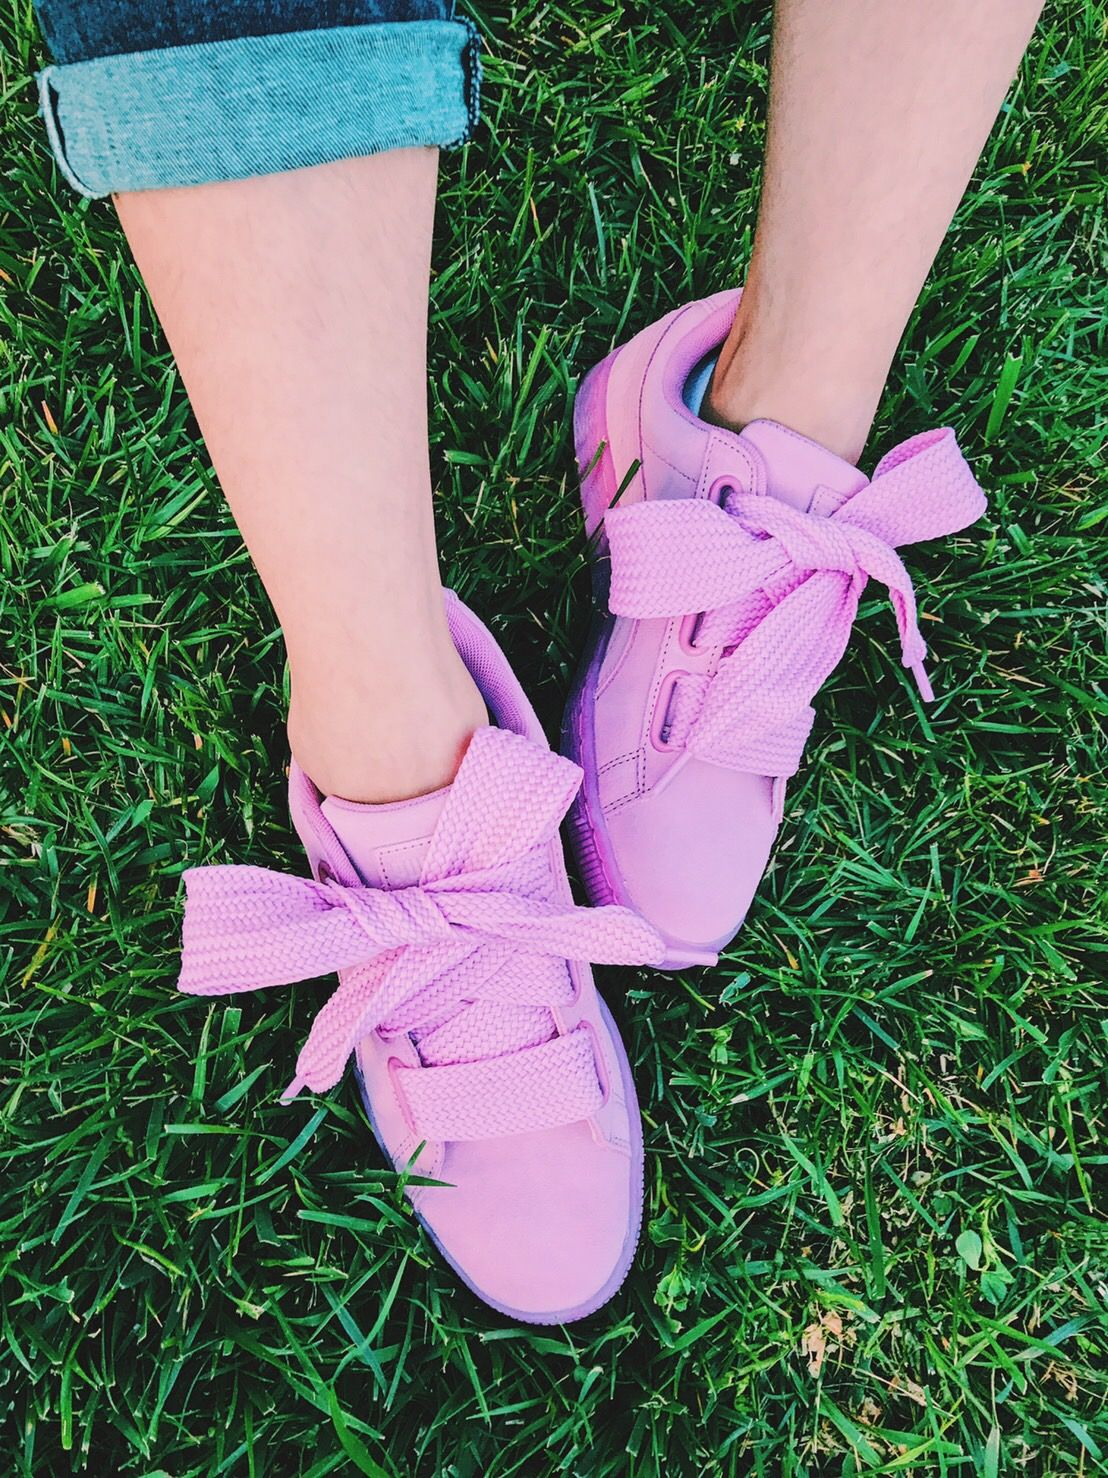 Laces Heart Pink Basket Women's Suede Prism Leather Puma Reset Bow my8wOP0vNn